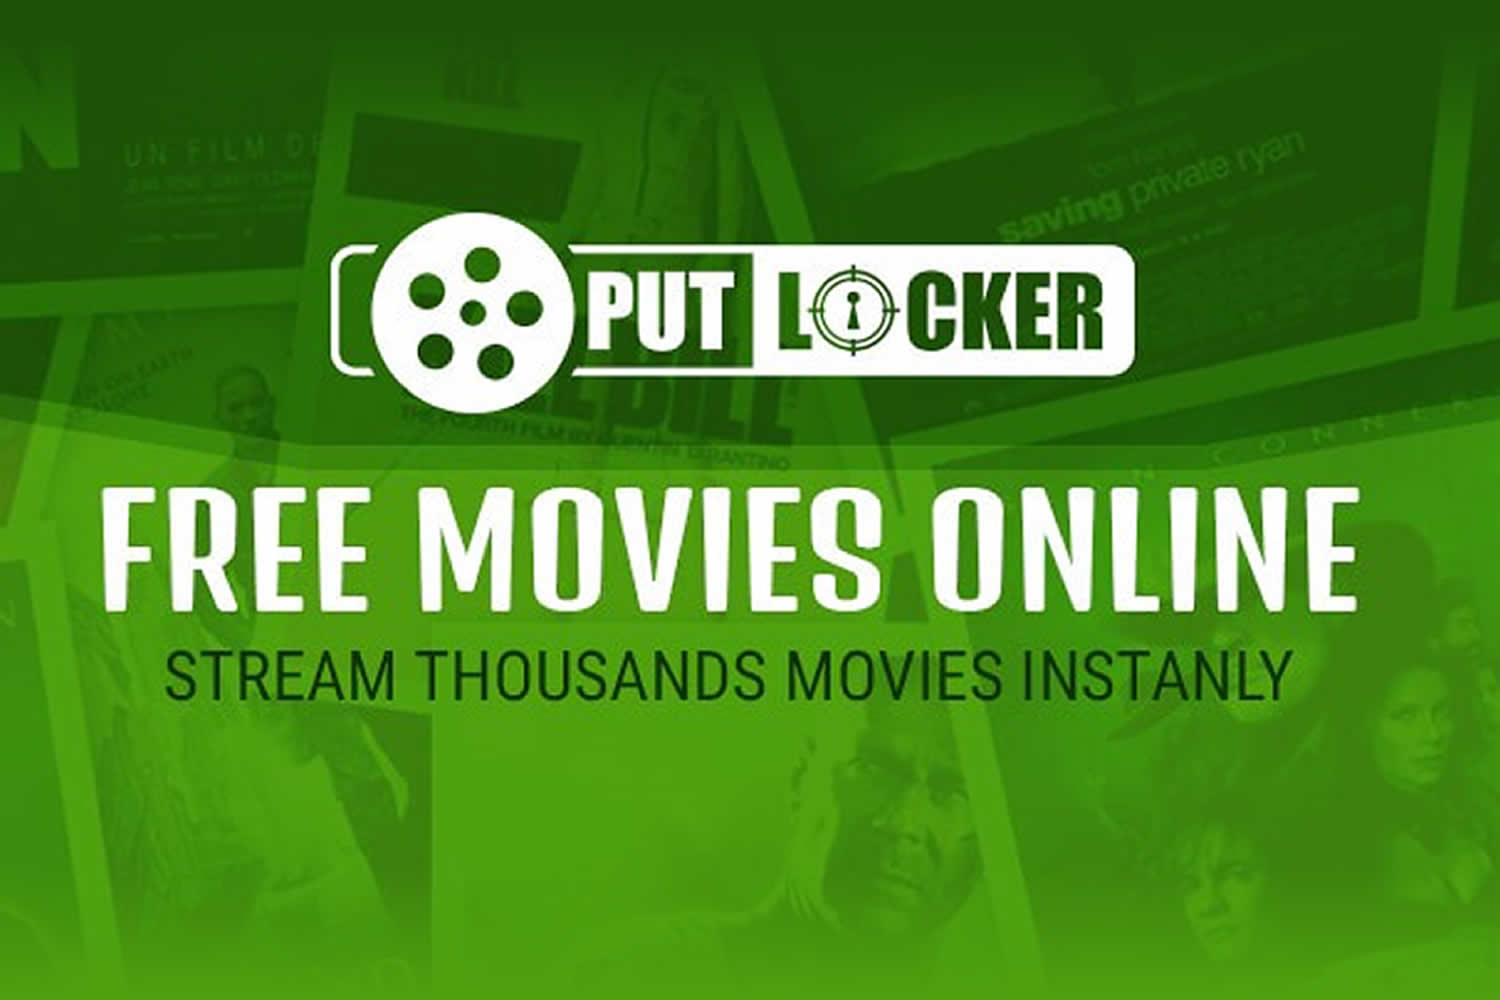 Watch The Reject Putlocker Movies